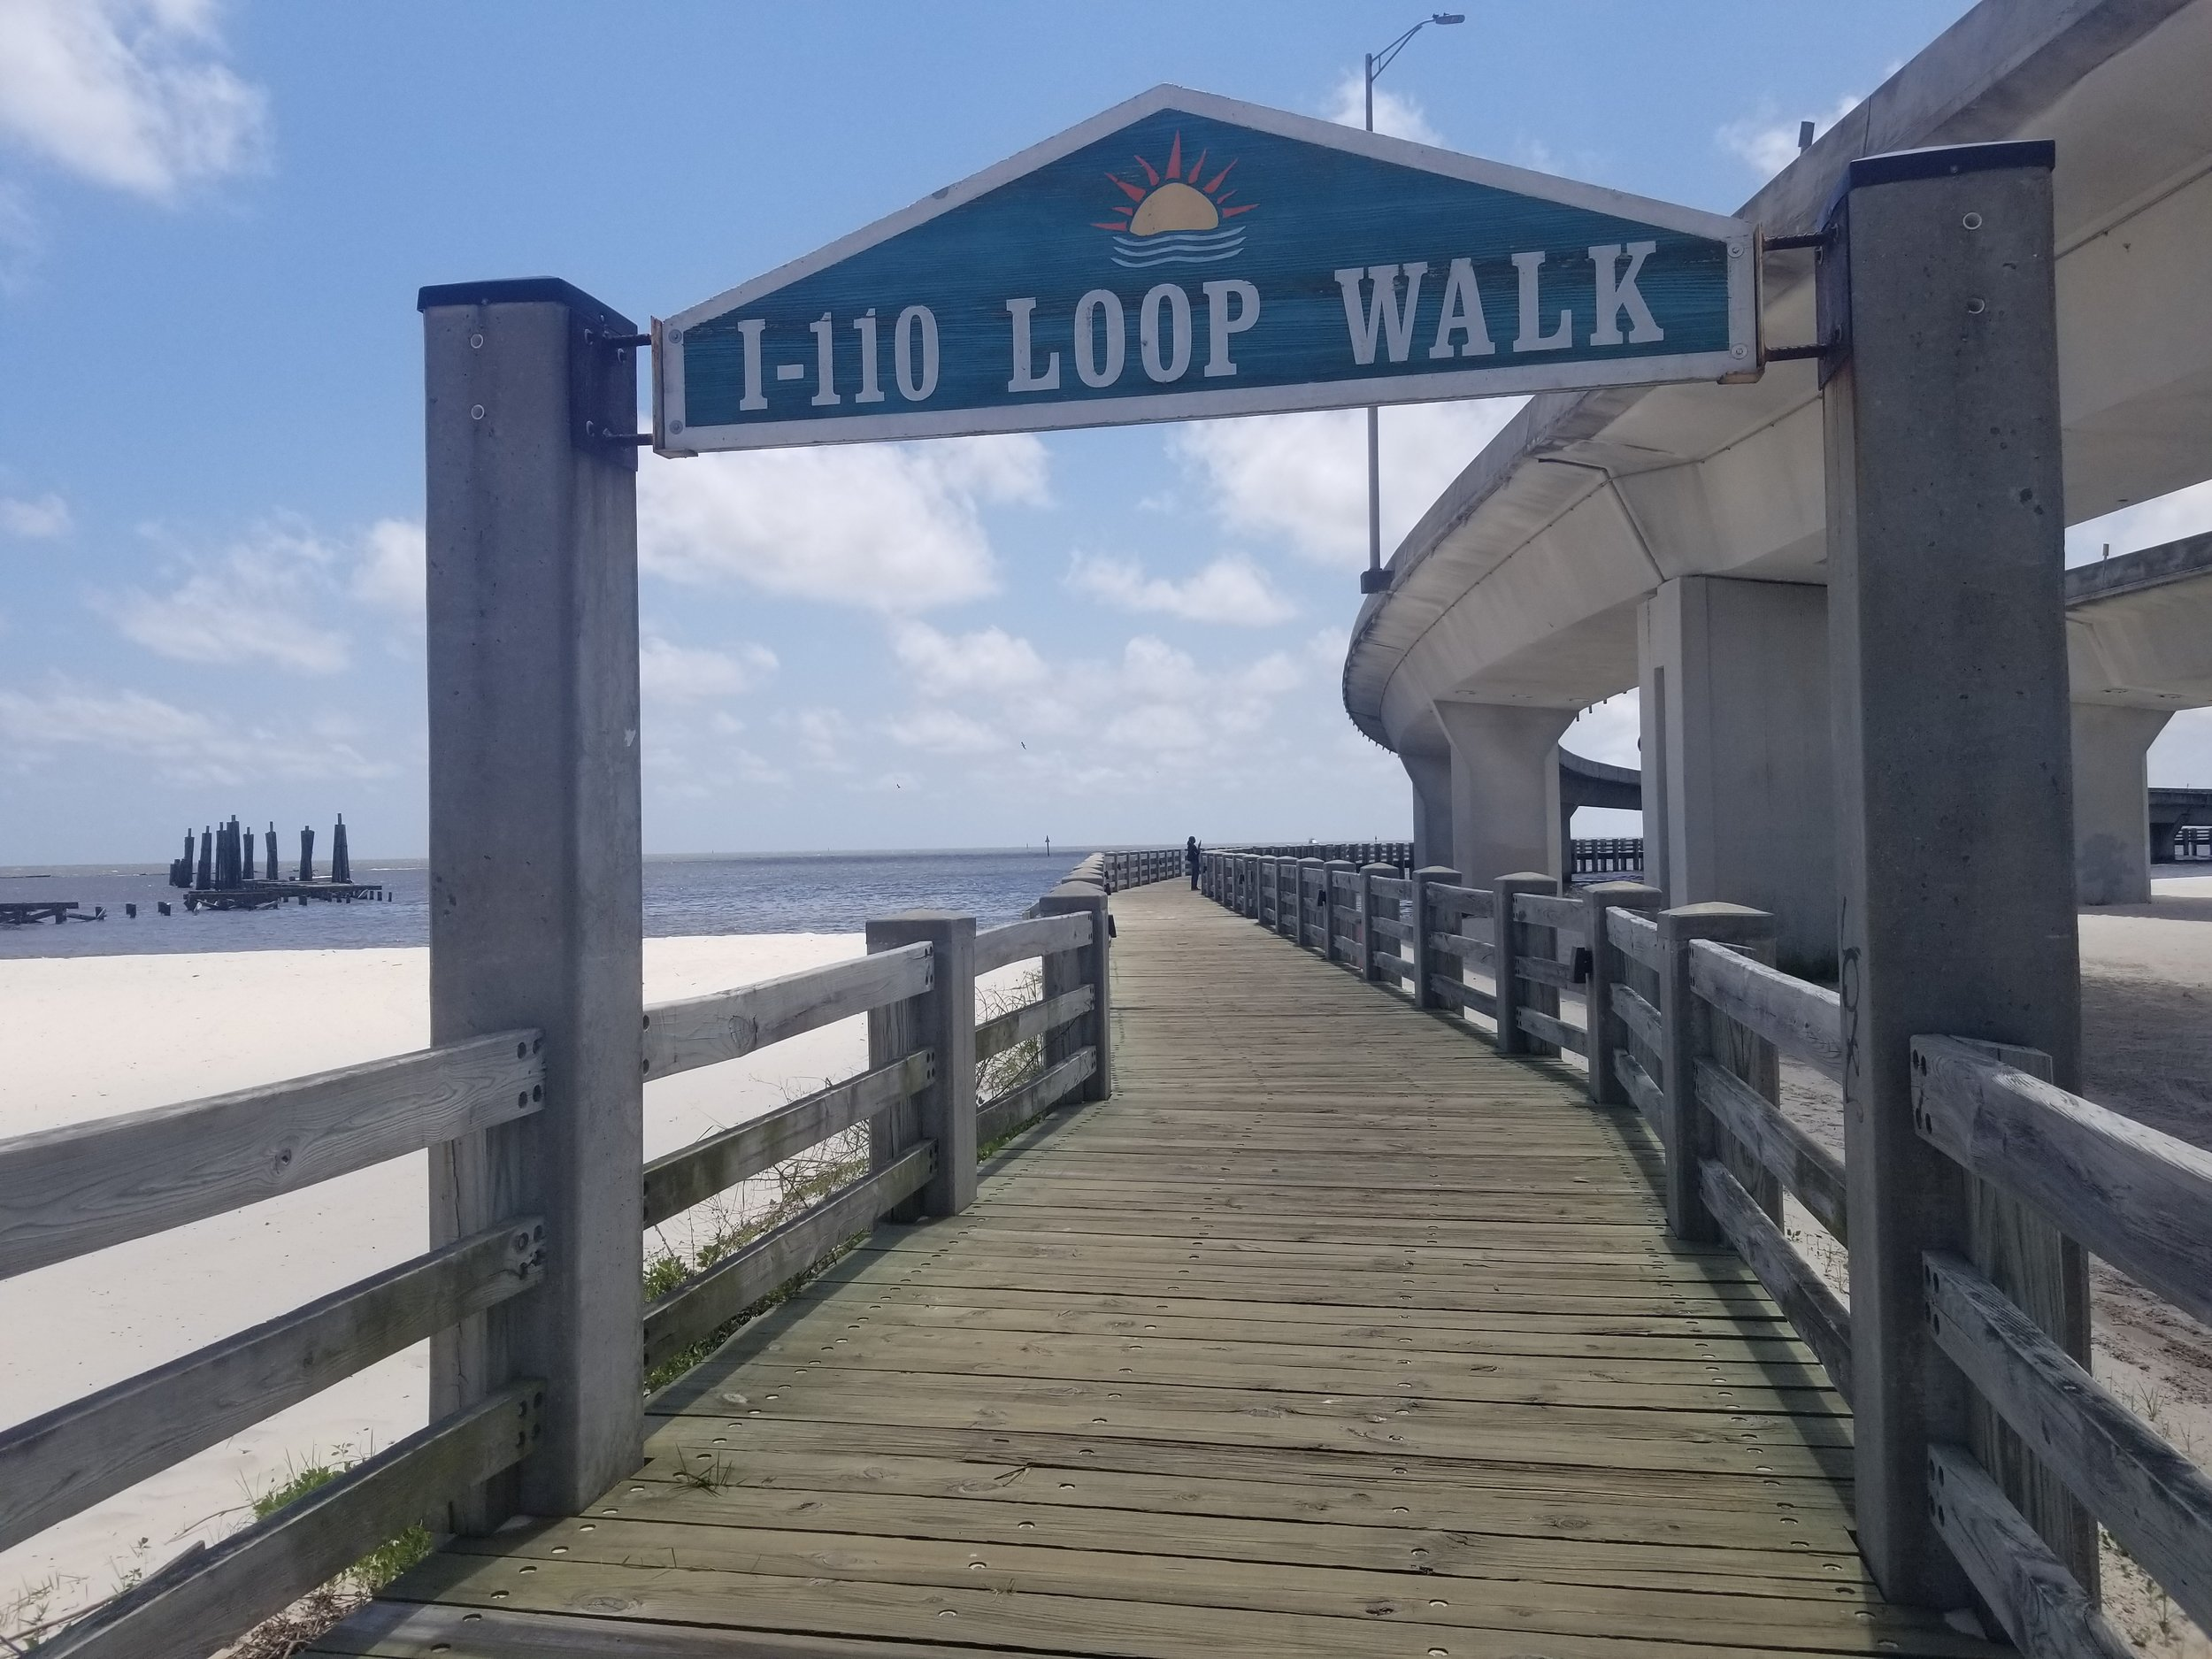 We walked from the Biloxi Visitor Center to the Beau Rivage Casino along this boardwalk